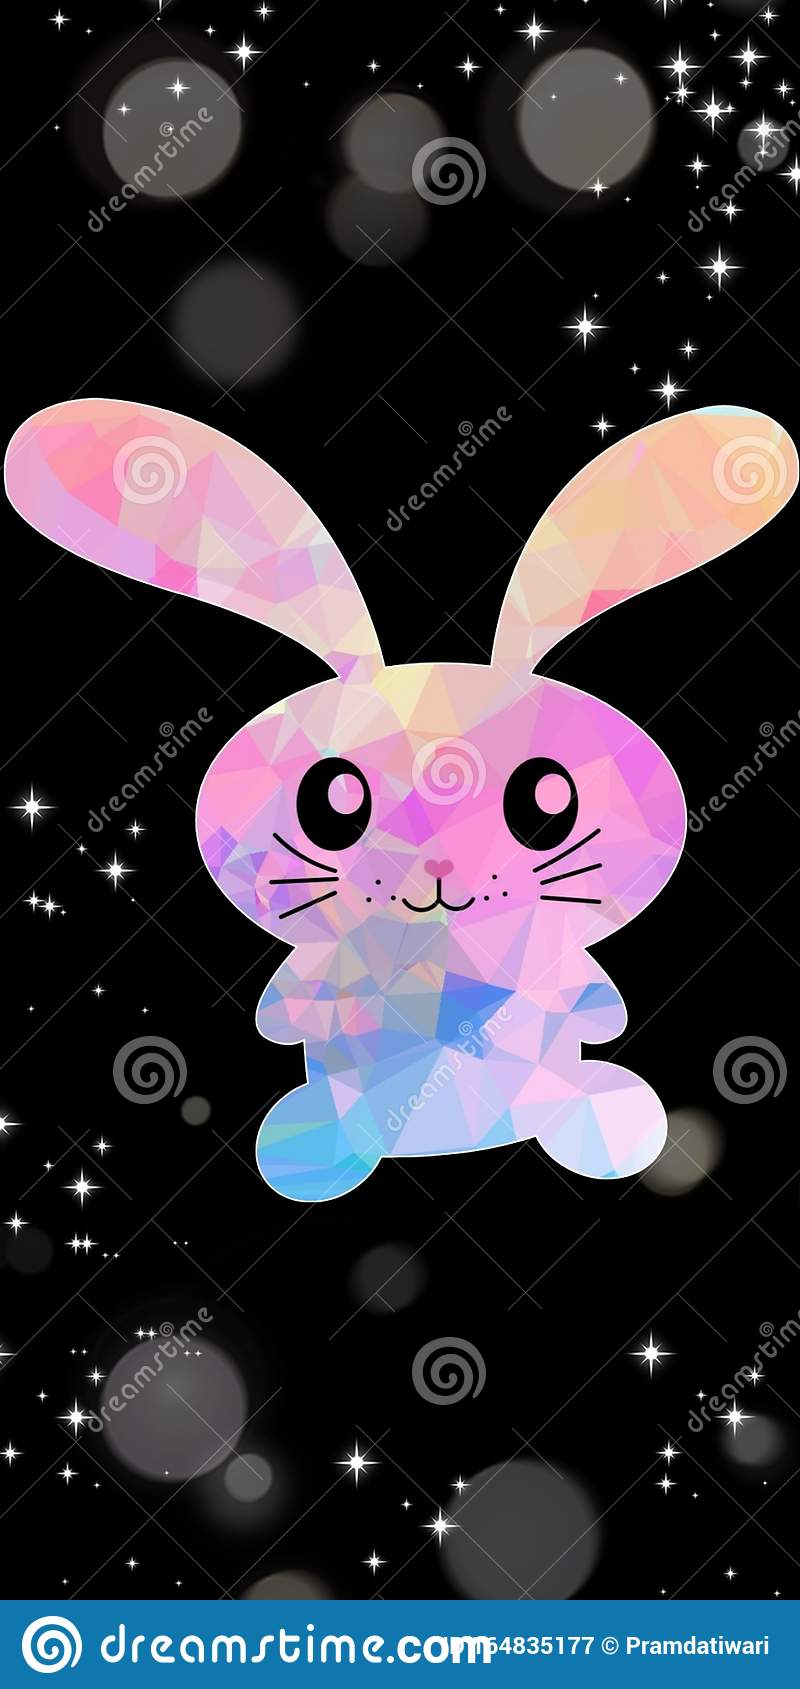 Cute Pink And Light Blue Bunny Rabbit Vector With Black Dark